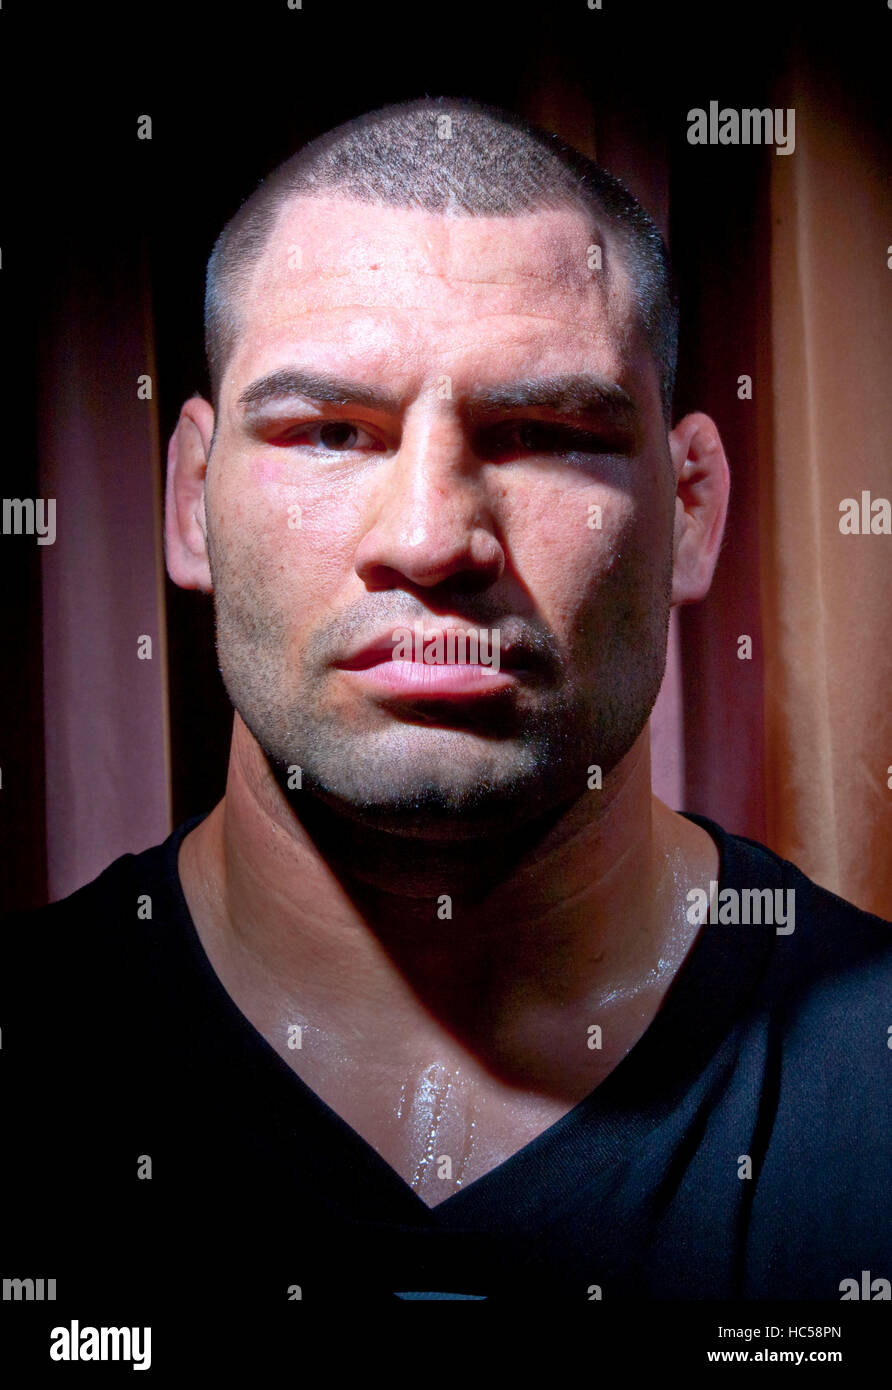 UFC fighter Cain Velasquez in Los Angeles, California on October 21, 2009. Francis Specker - Stock Image